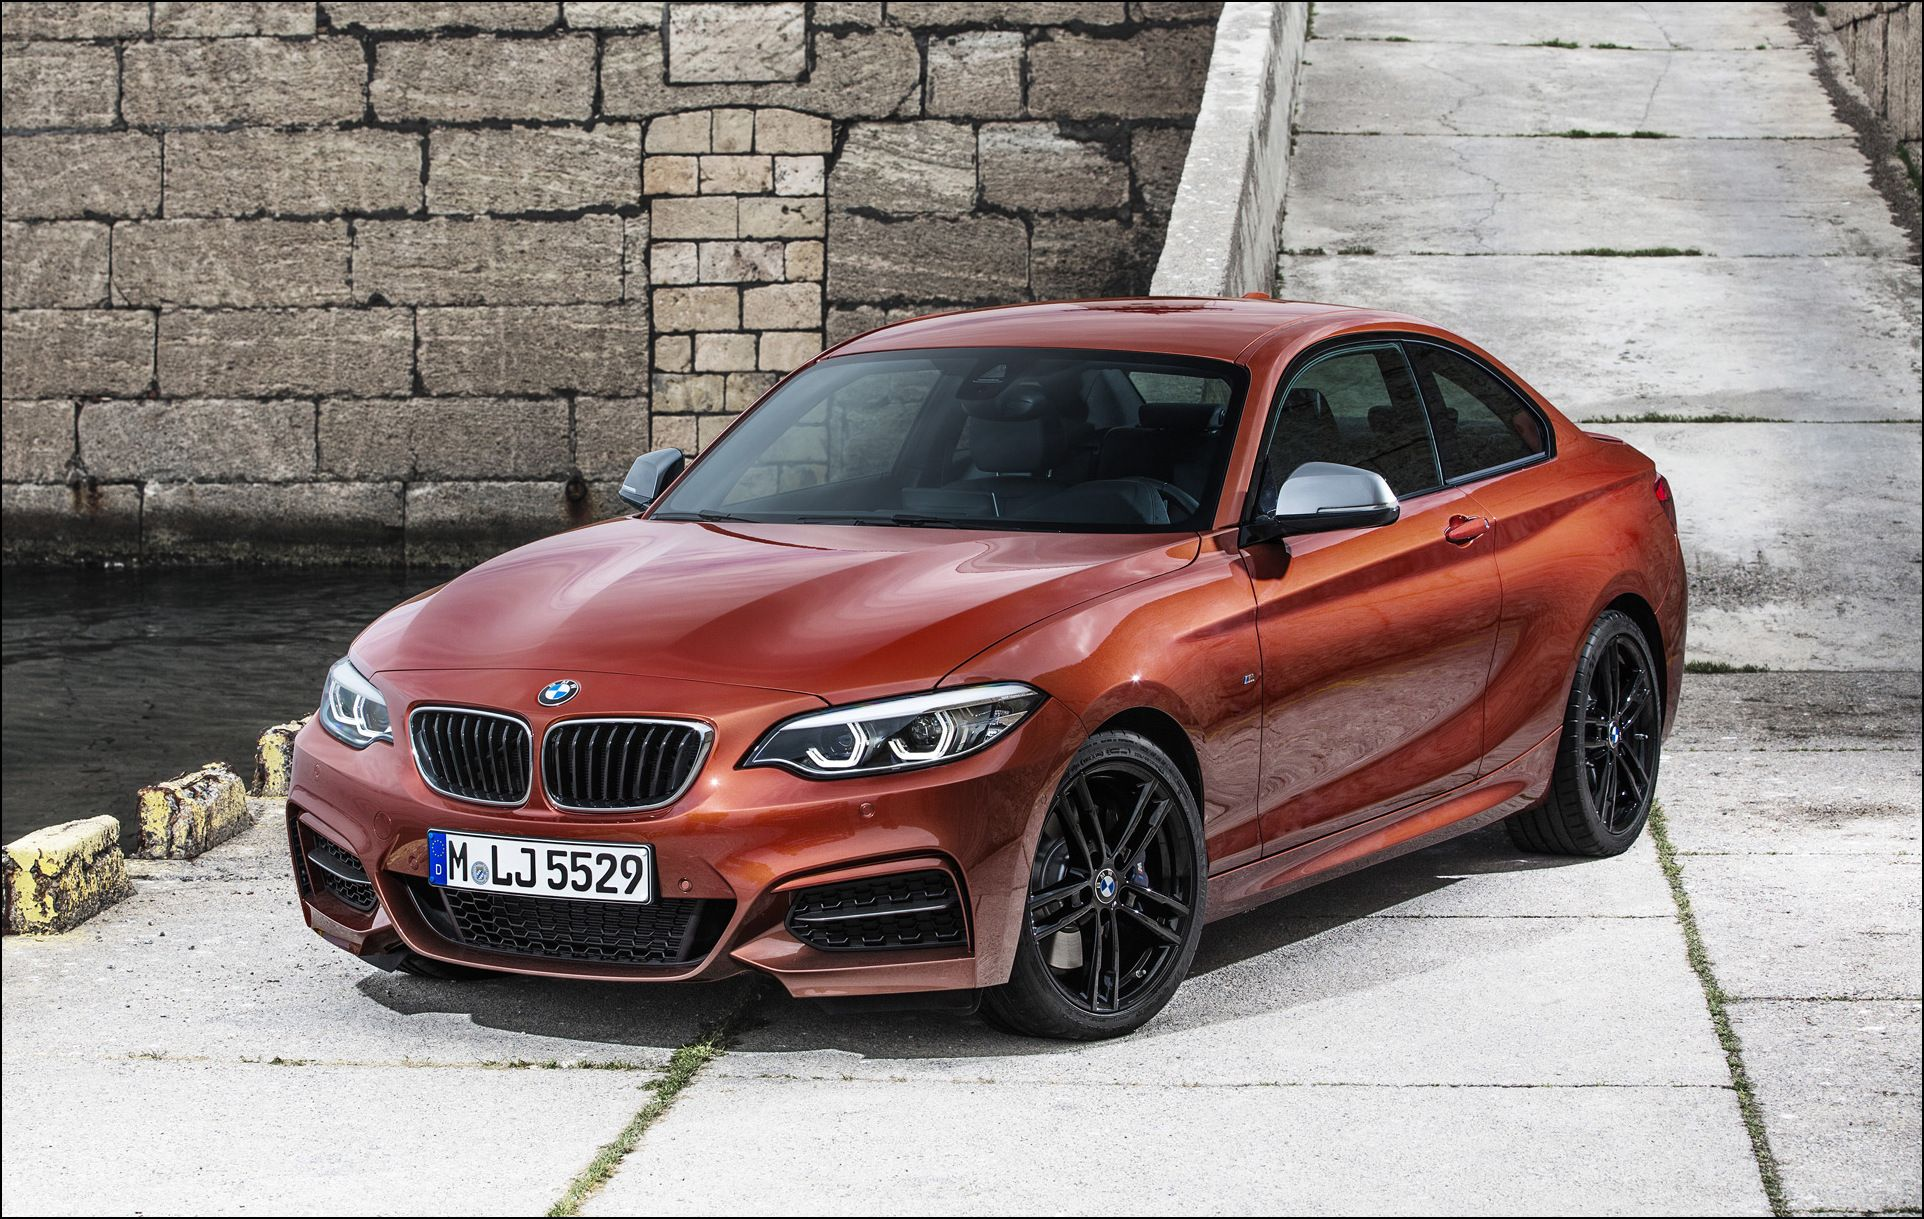 2020 Bmw 2 Series Review With Images Bmw Bmw 2 New Cars